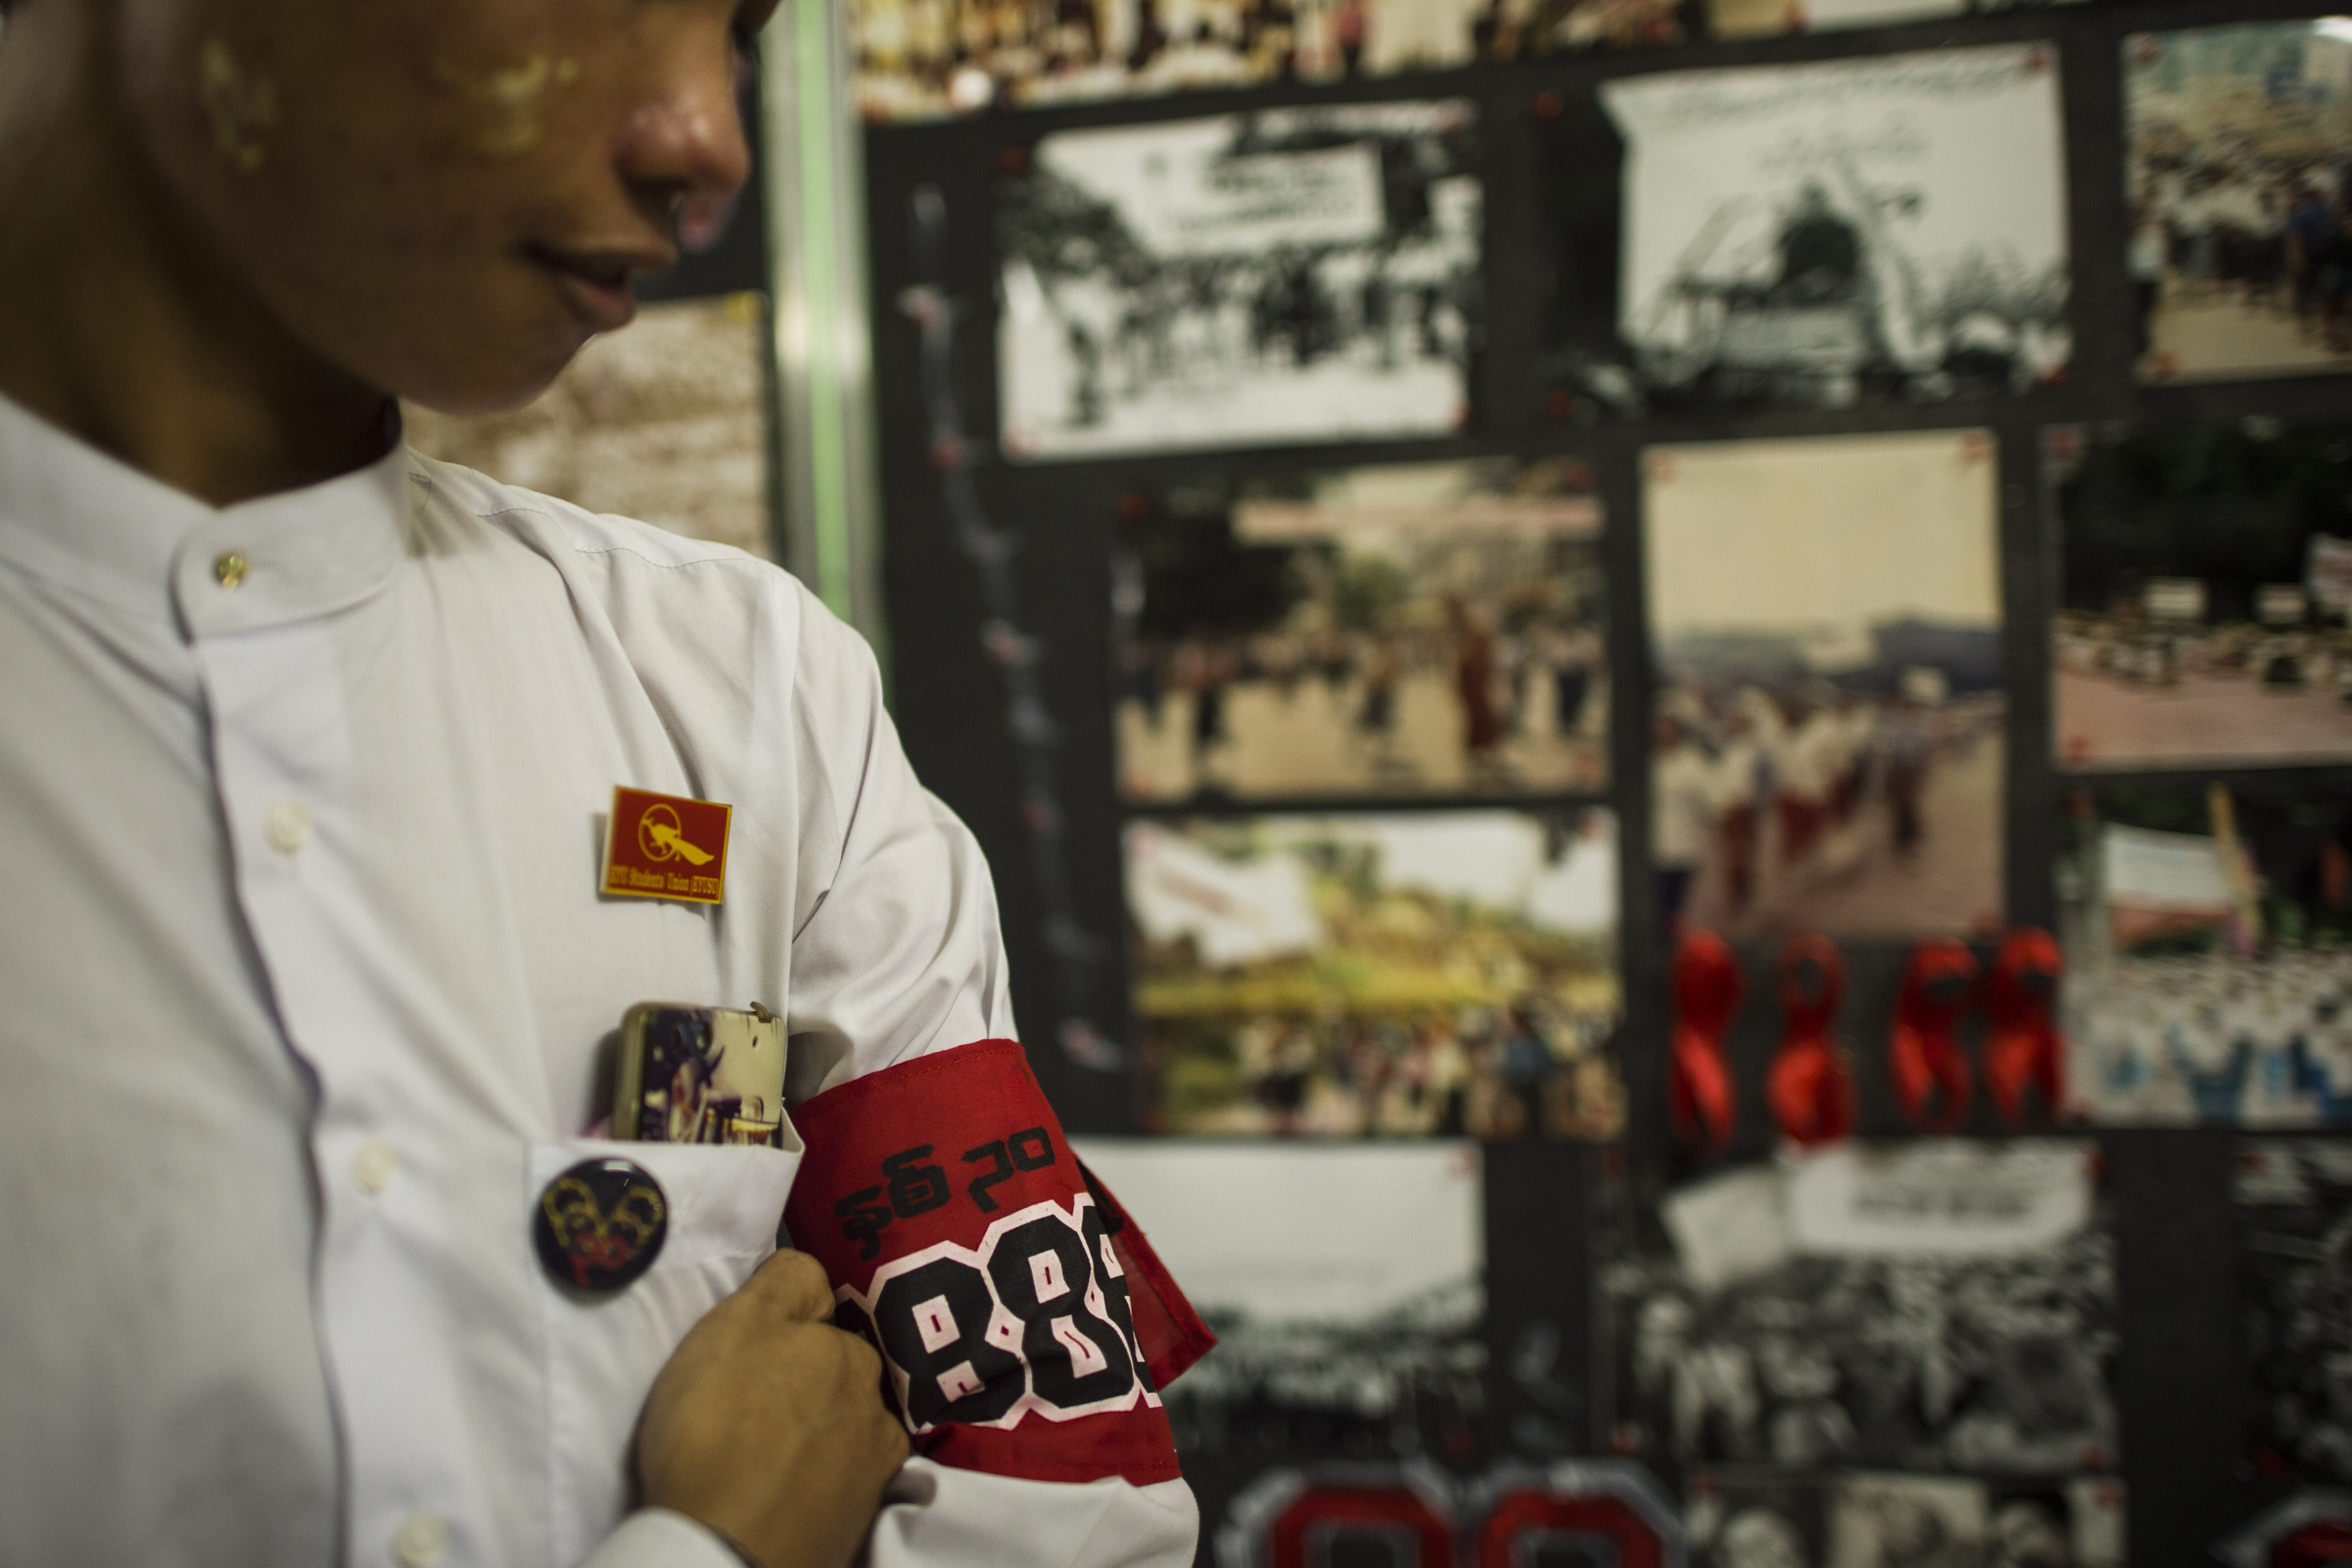 A student wearing an armband stands next to a photo exhibition held as part of events to commemorate the 30th anniversary of the 8888 Uprising at the University of Yangon on Aug. 6, 2018.